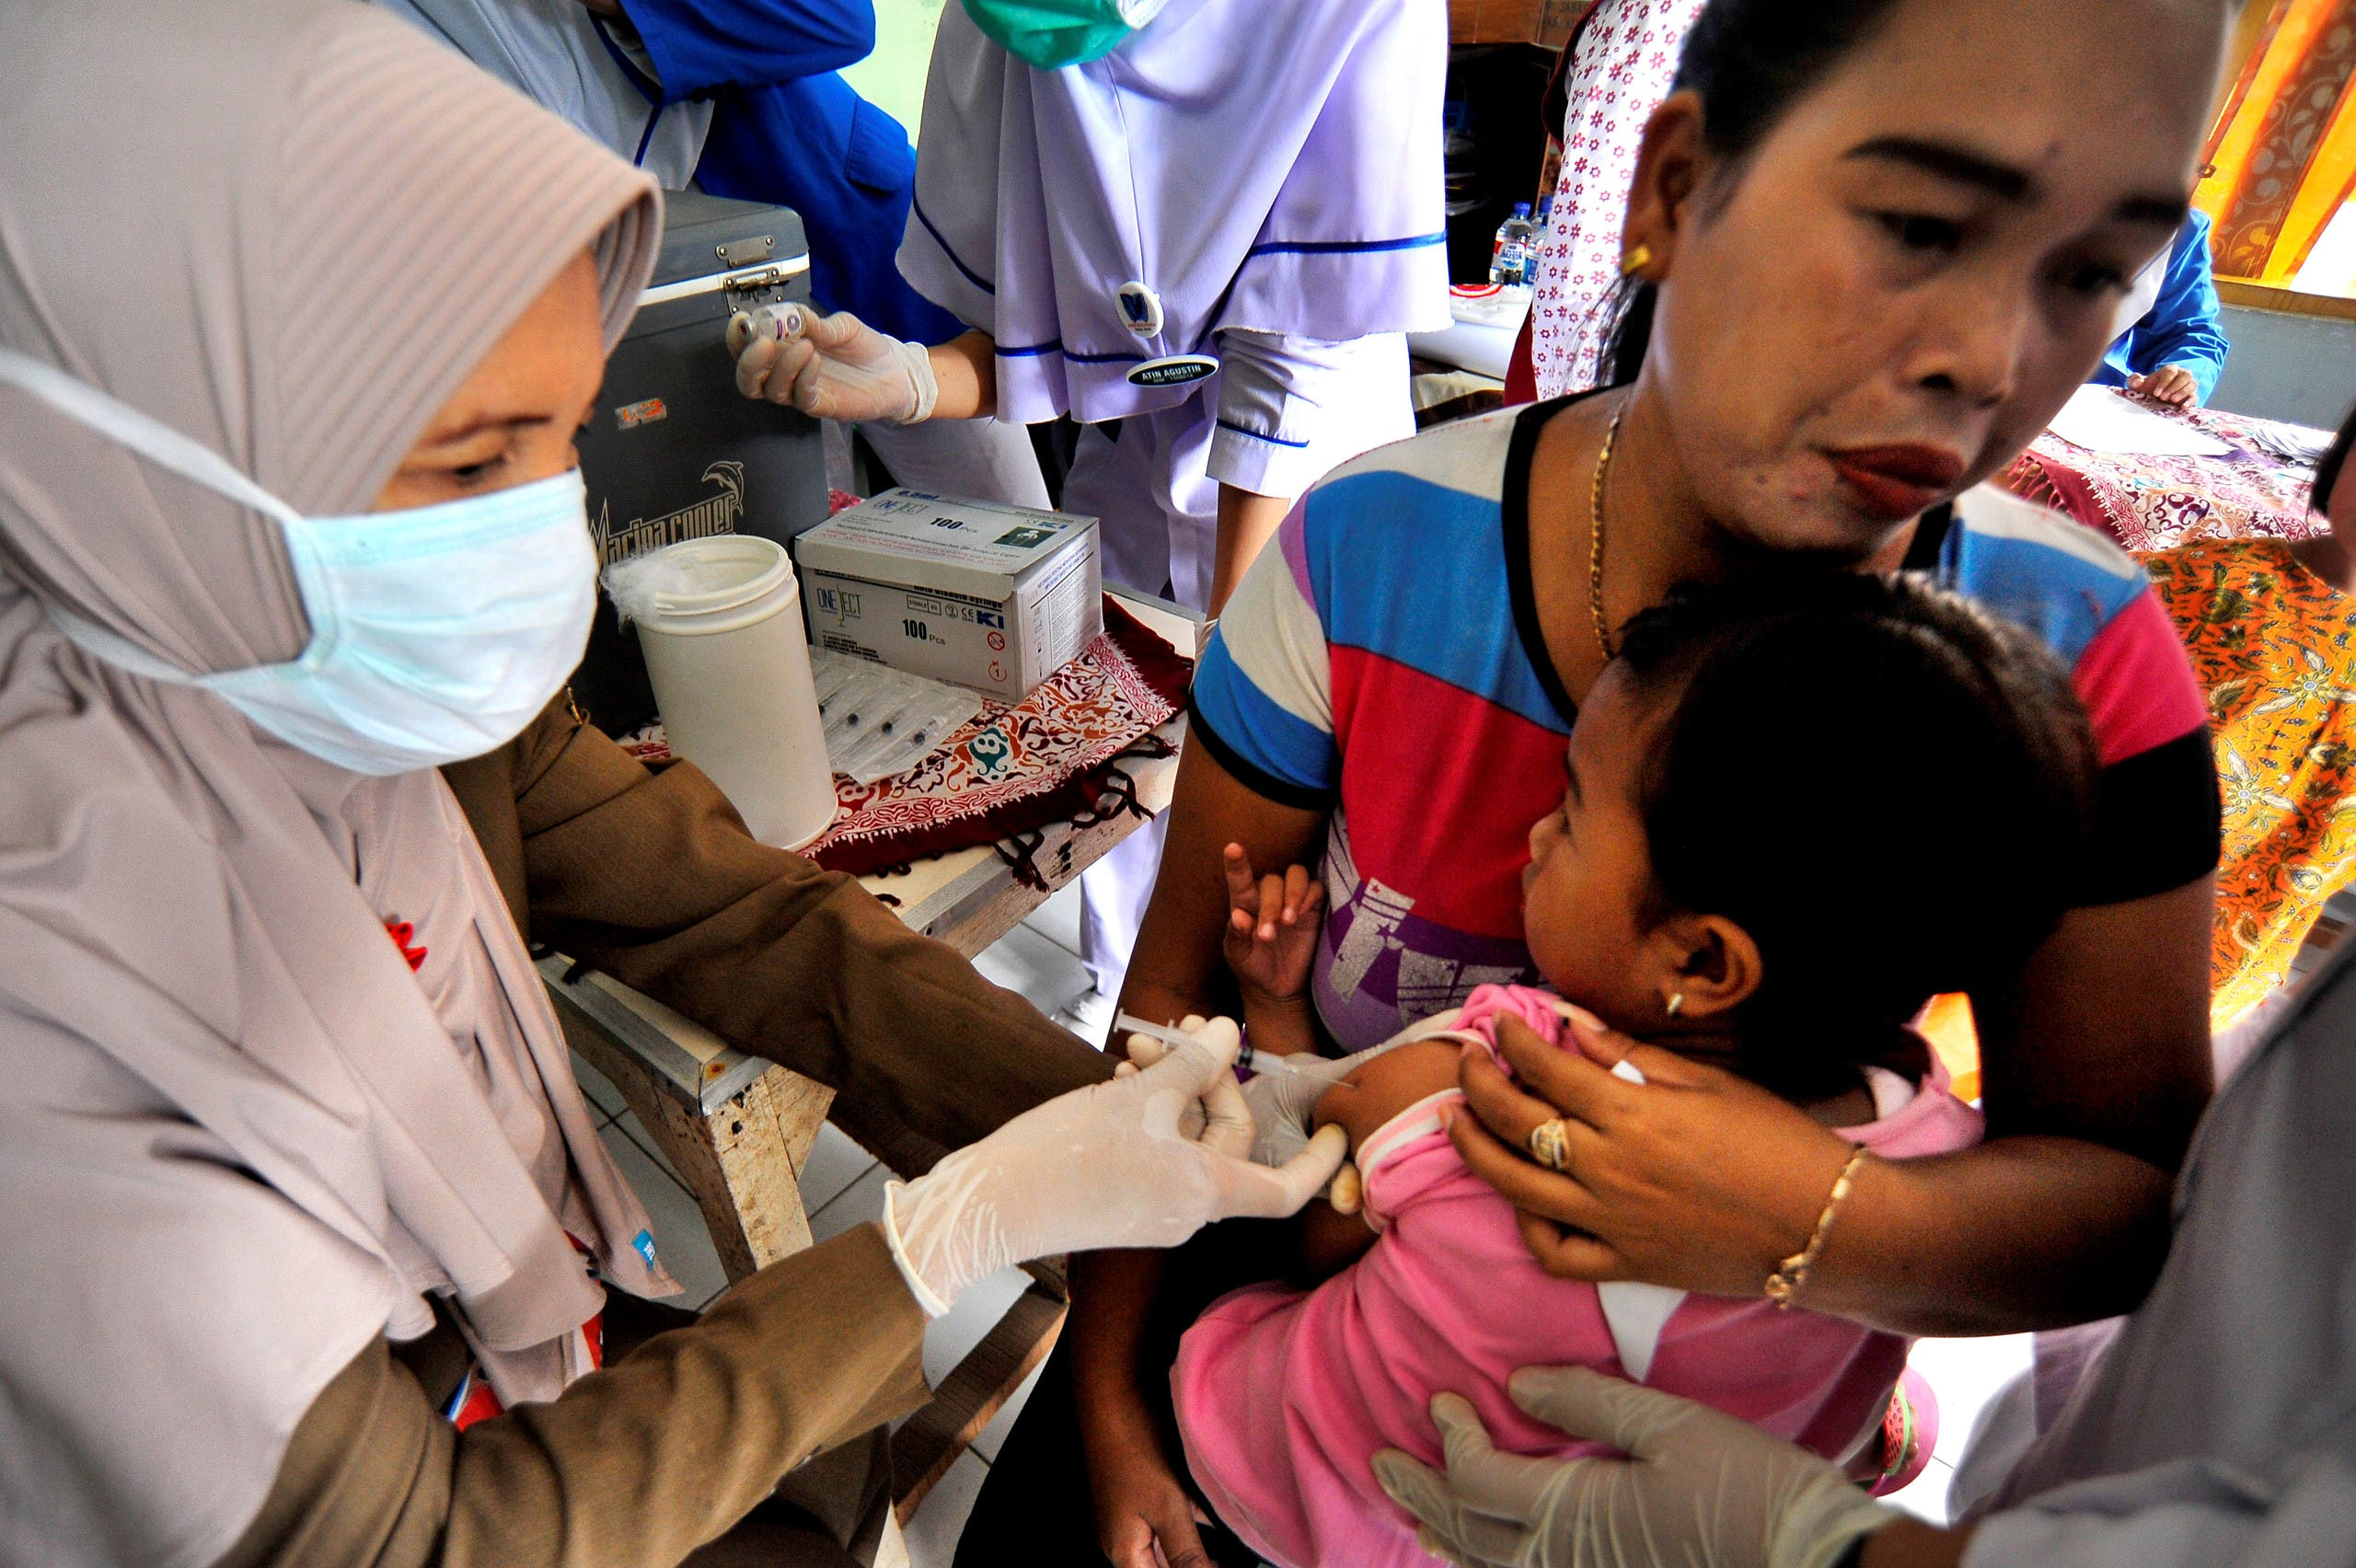 A medical officers vaccinates a child for DPT (Diphtheria, Tetanus and Pertussis or Whooping Cough) in Serang, Banten province, Indonesia December 11, 2017. (File photo: Reuters)